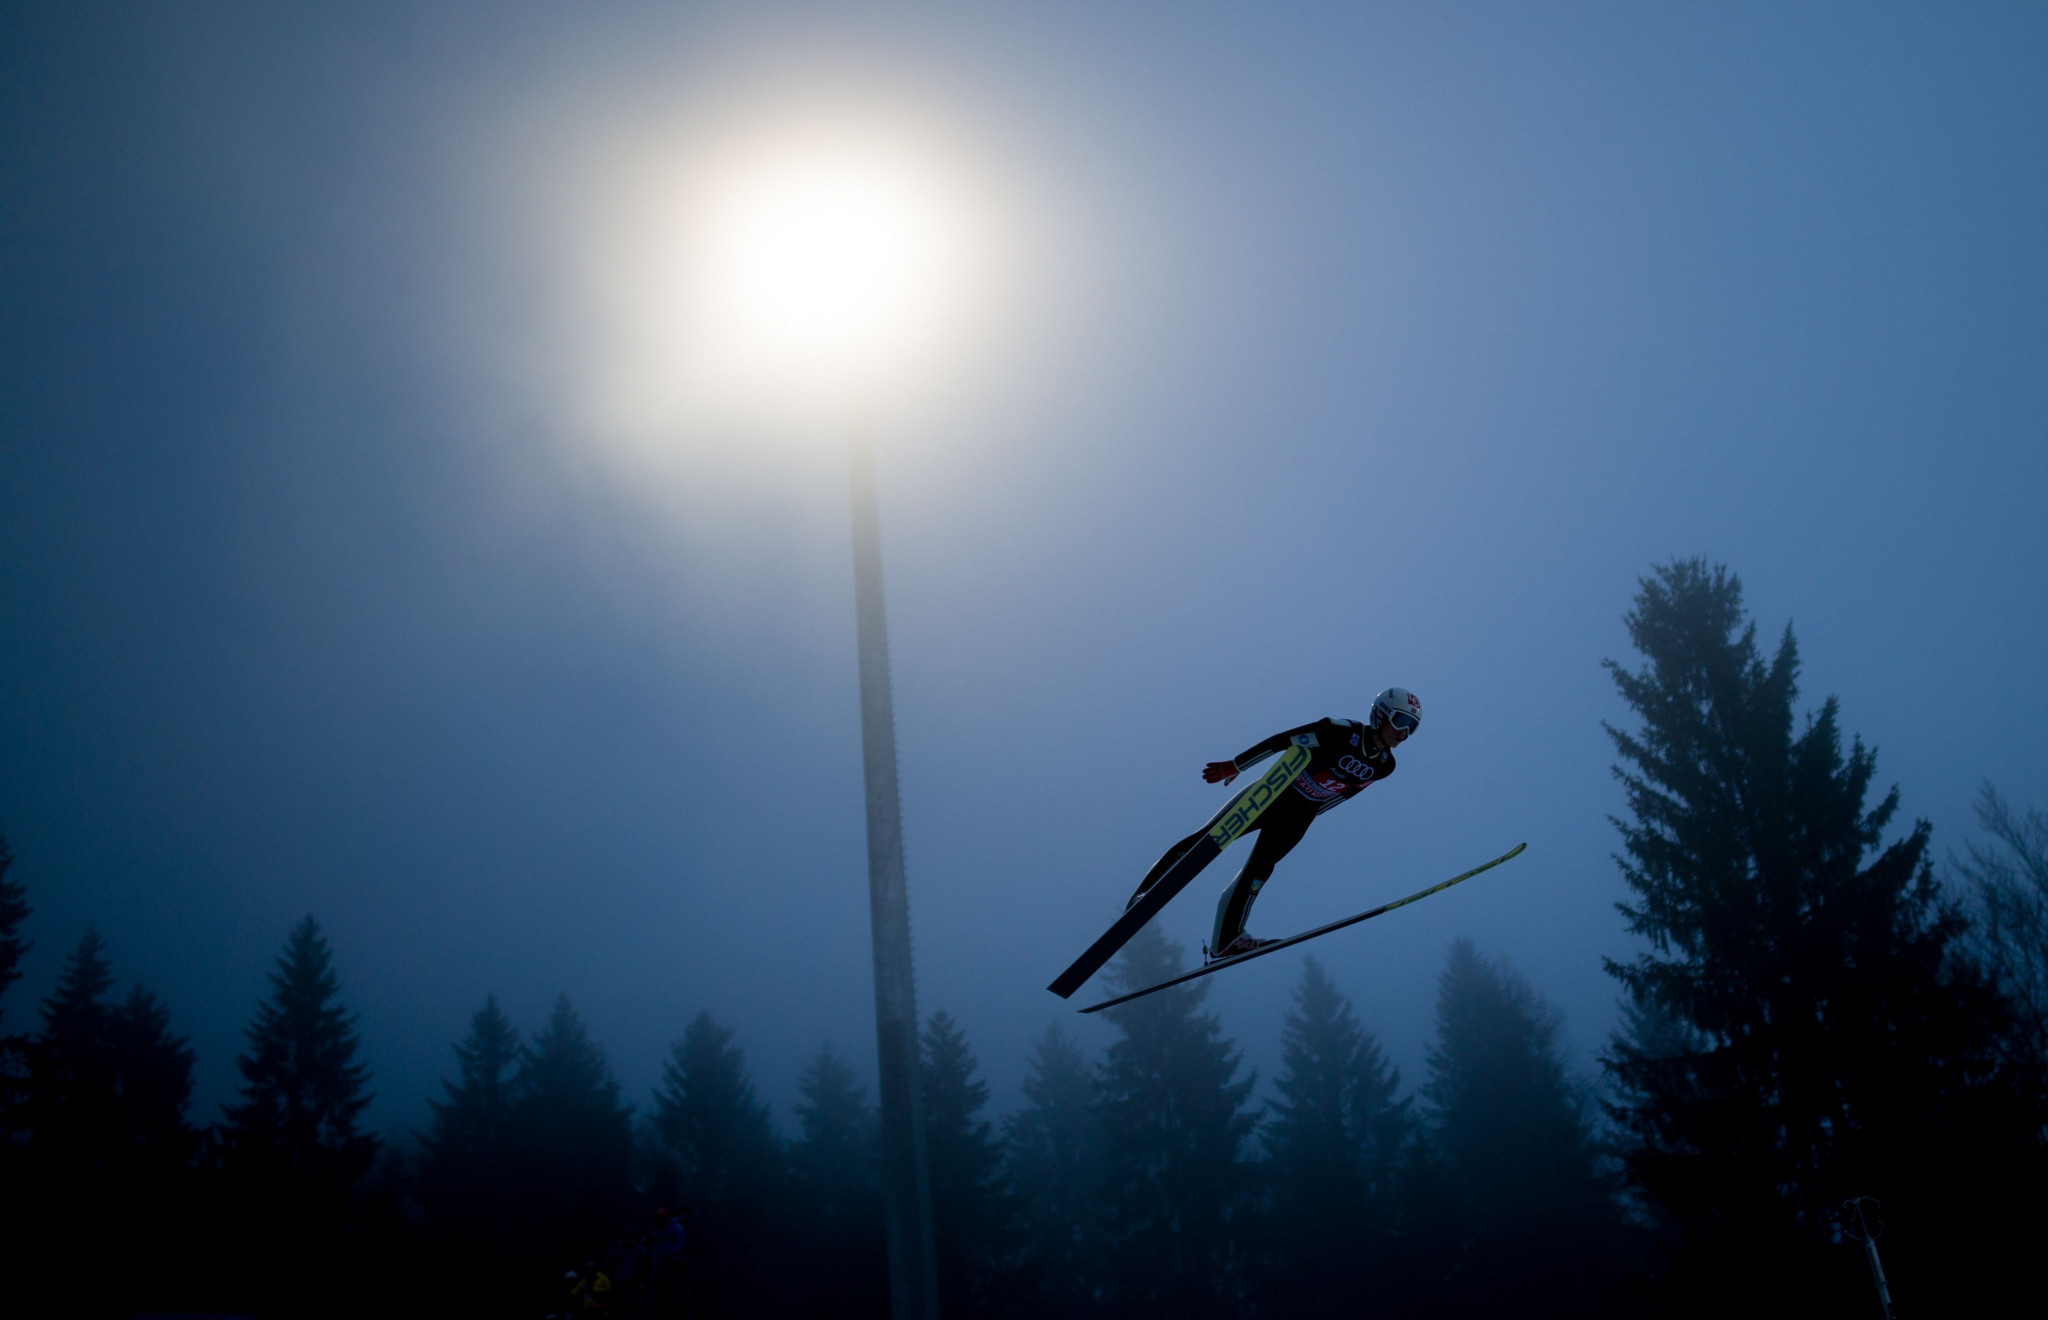 The Four-Hills Tournament is expected to provide one of the highlights of the 2018-2019 season ©Getty Images